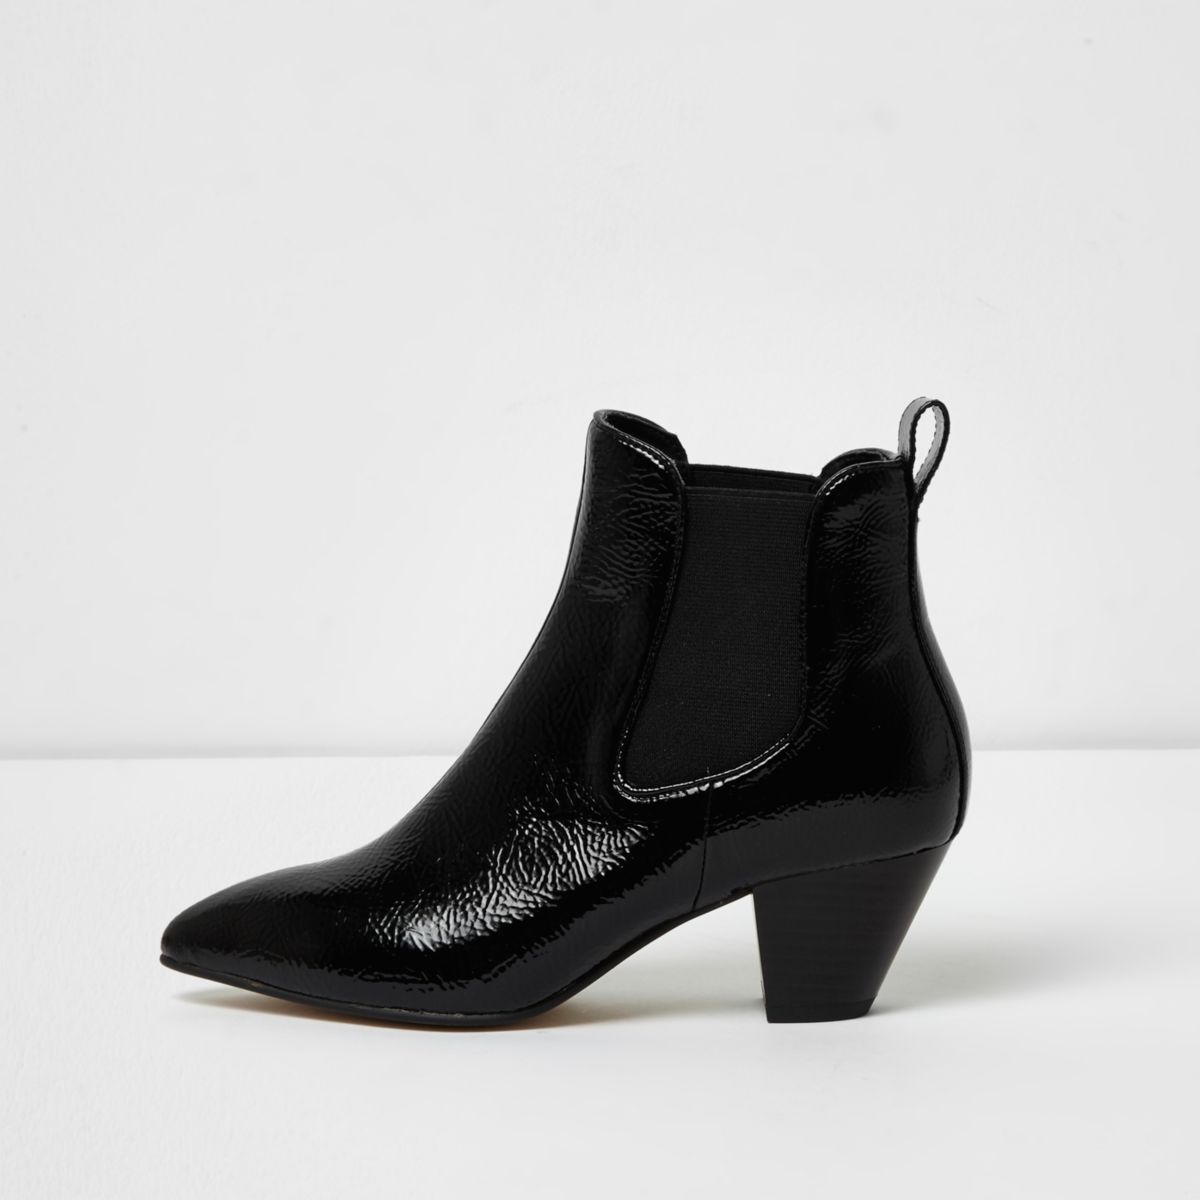 Black patent western ankle boots